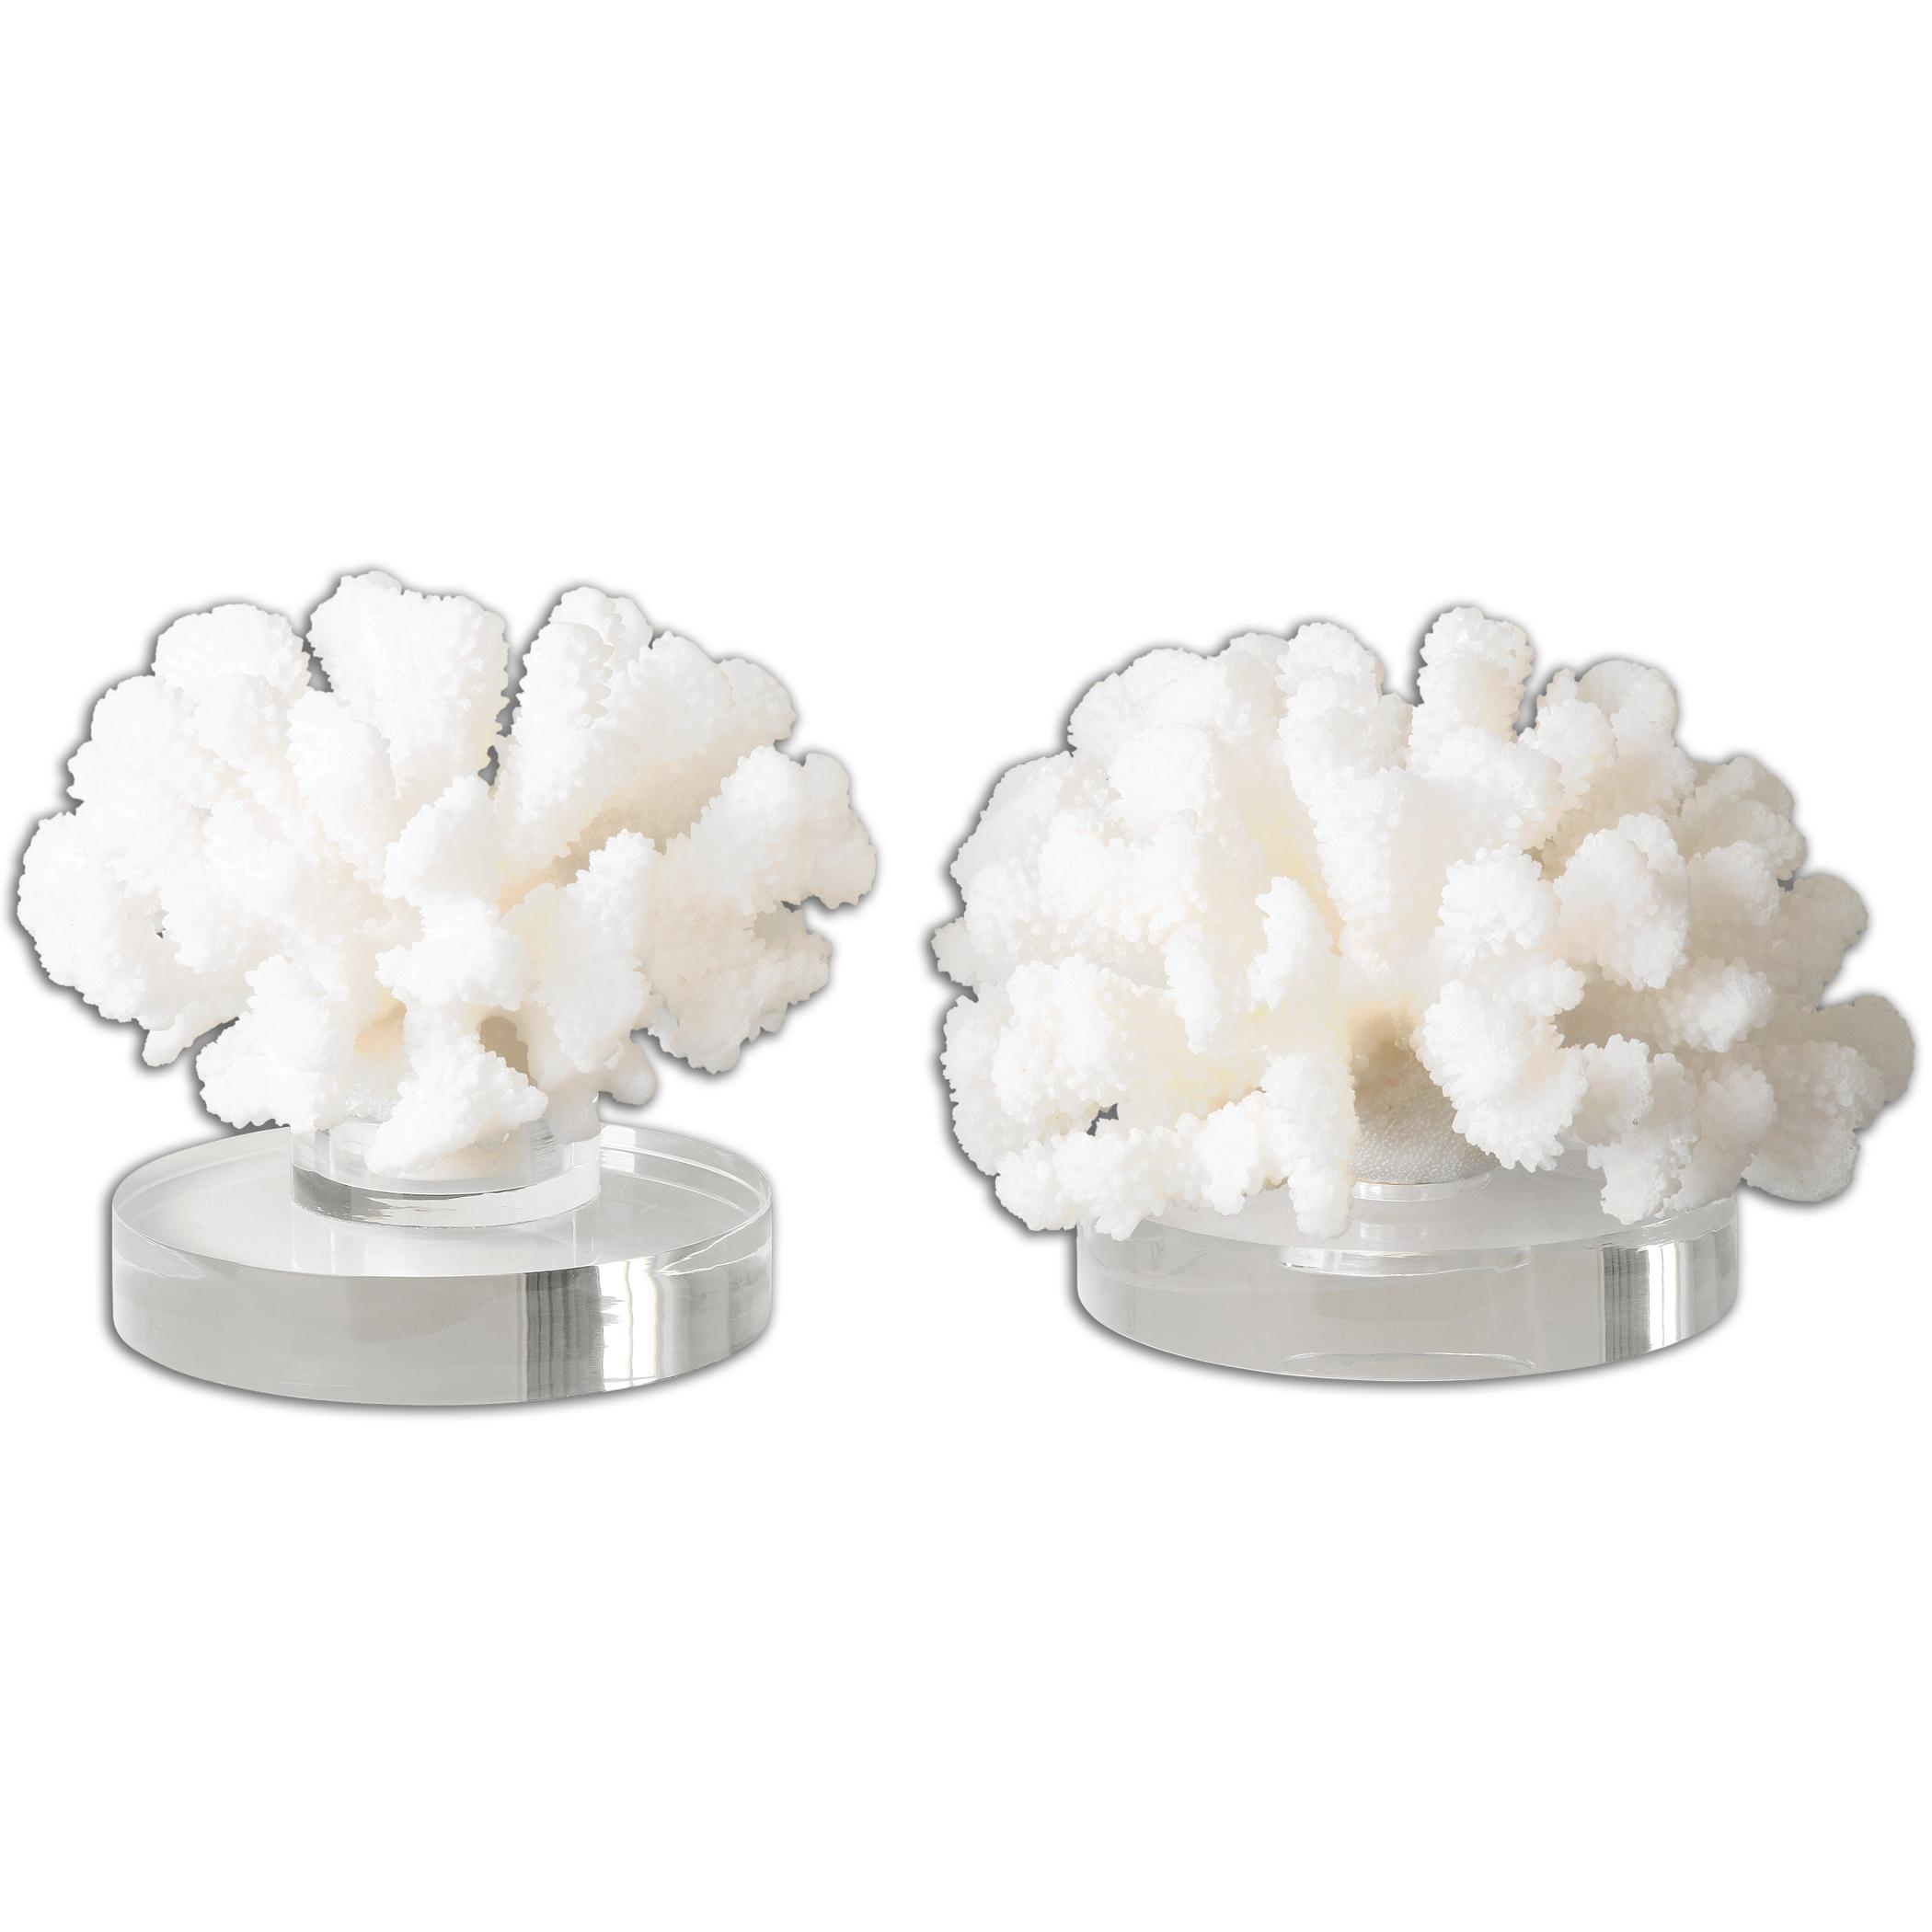 Accessories - Statues and Figurines Hard Coral Sculptures, Set of 2 by Uttermost at Dunk & Bright Furniture